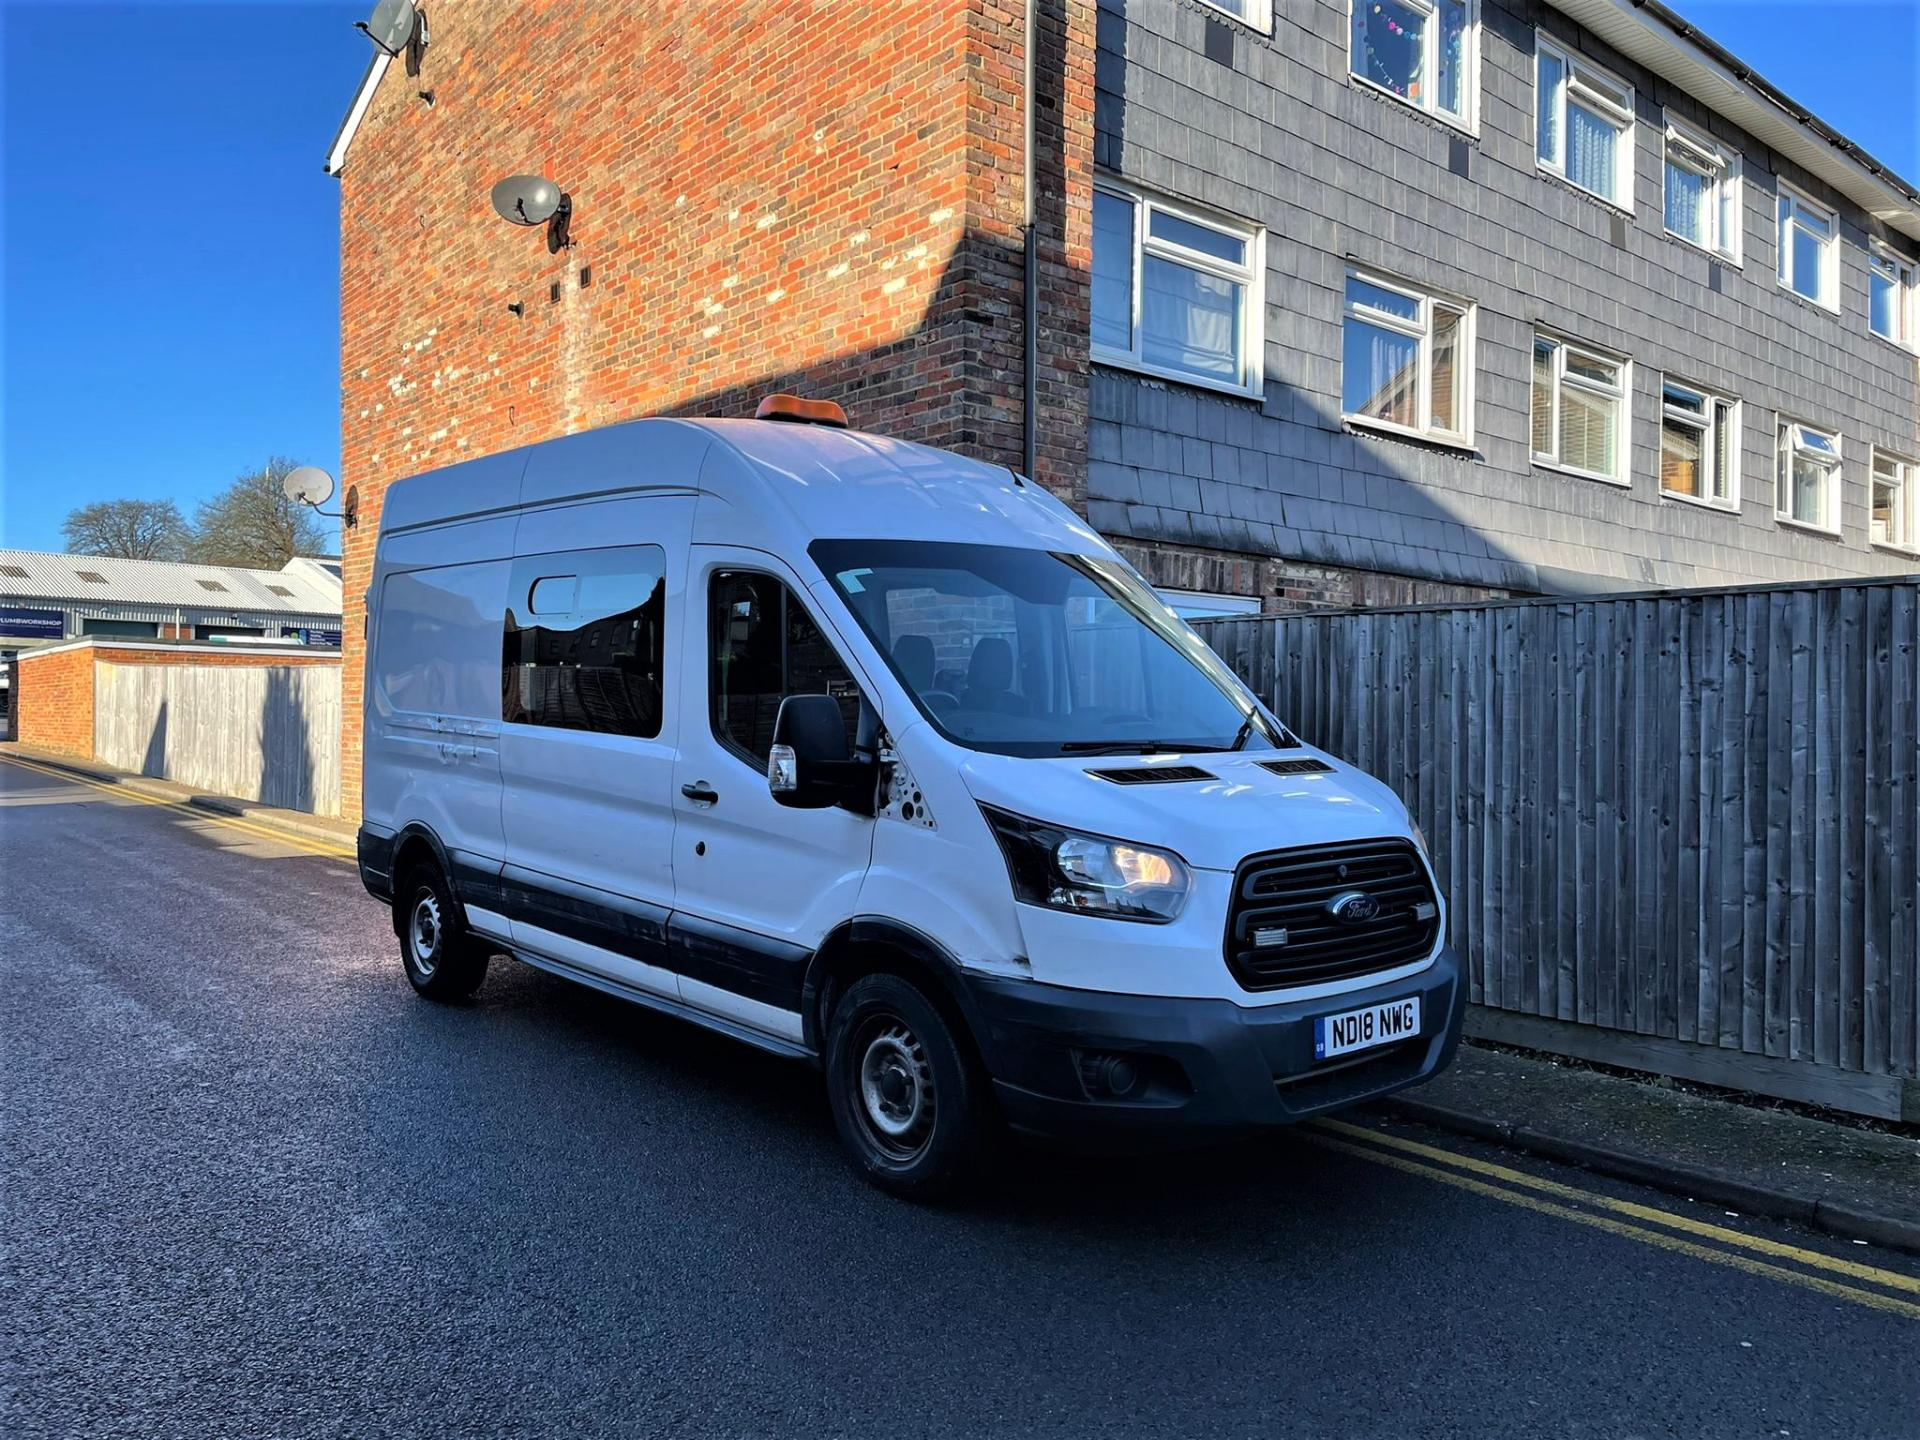 2018 (18) Ford Transit 350 EcoBlue FWD For Sale In Chesham, Buckinghamshire